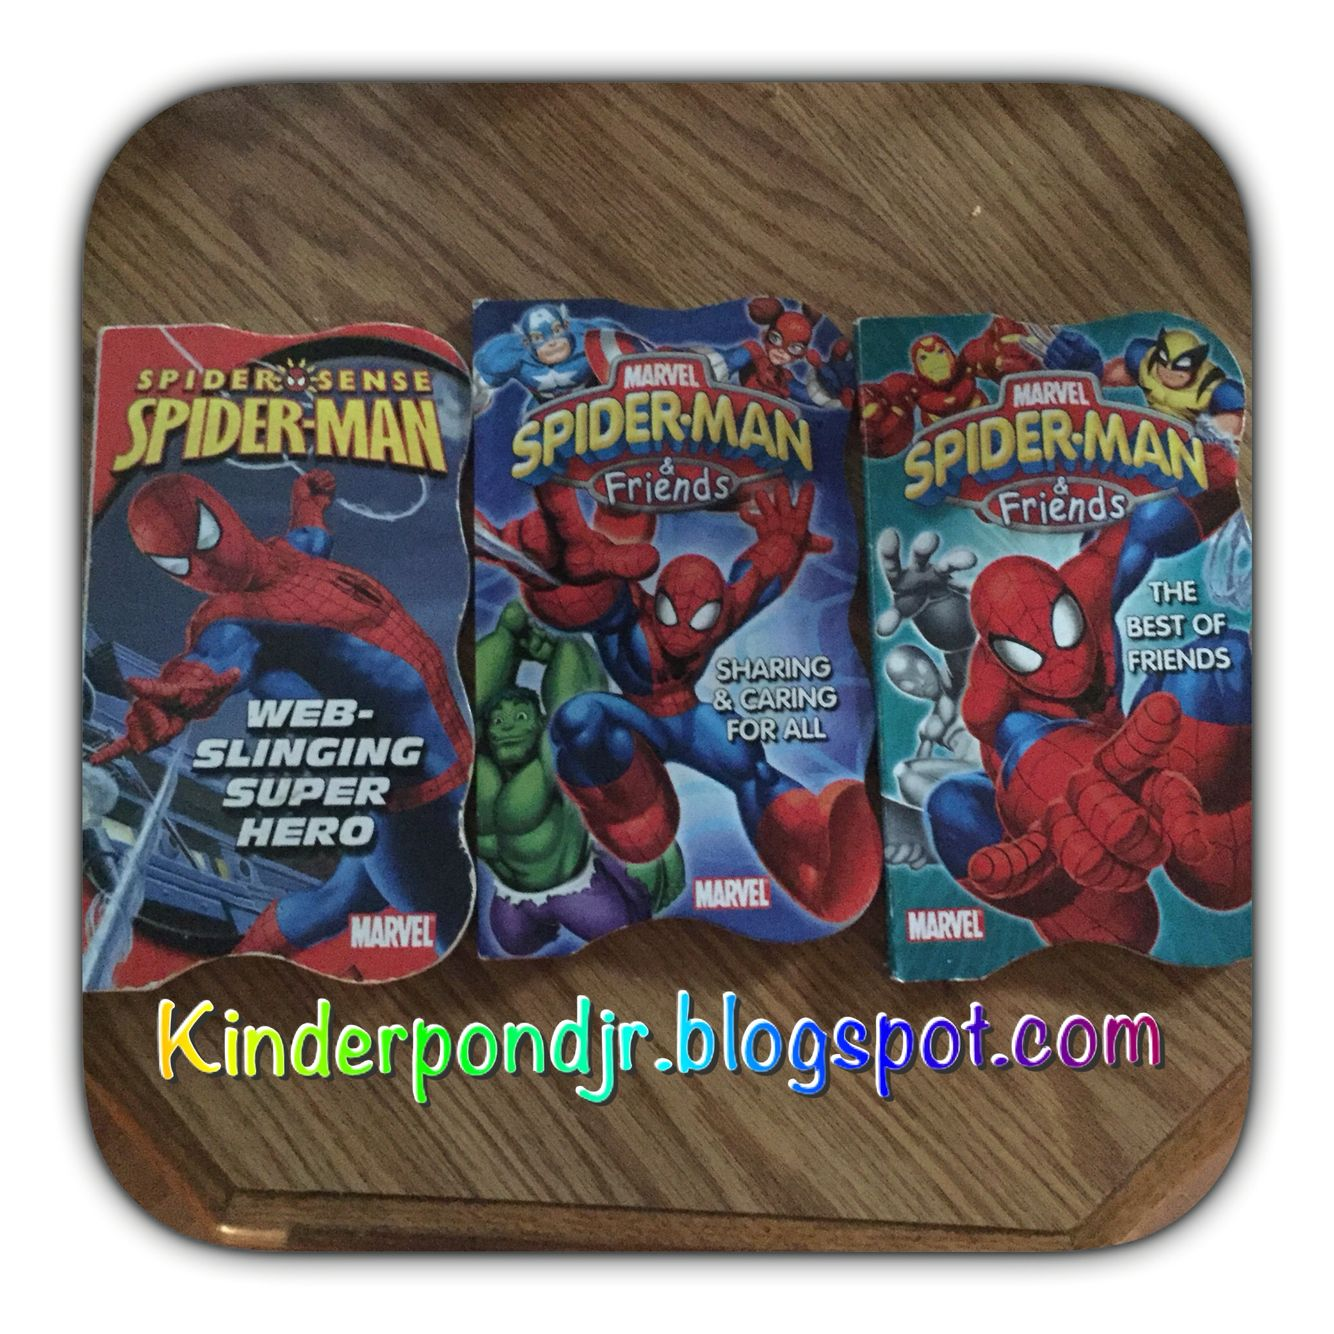 Kinderpond Jr With Images